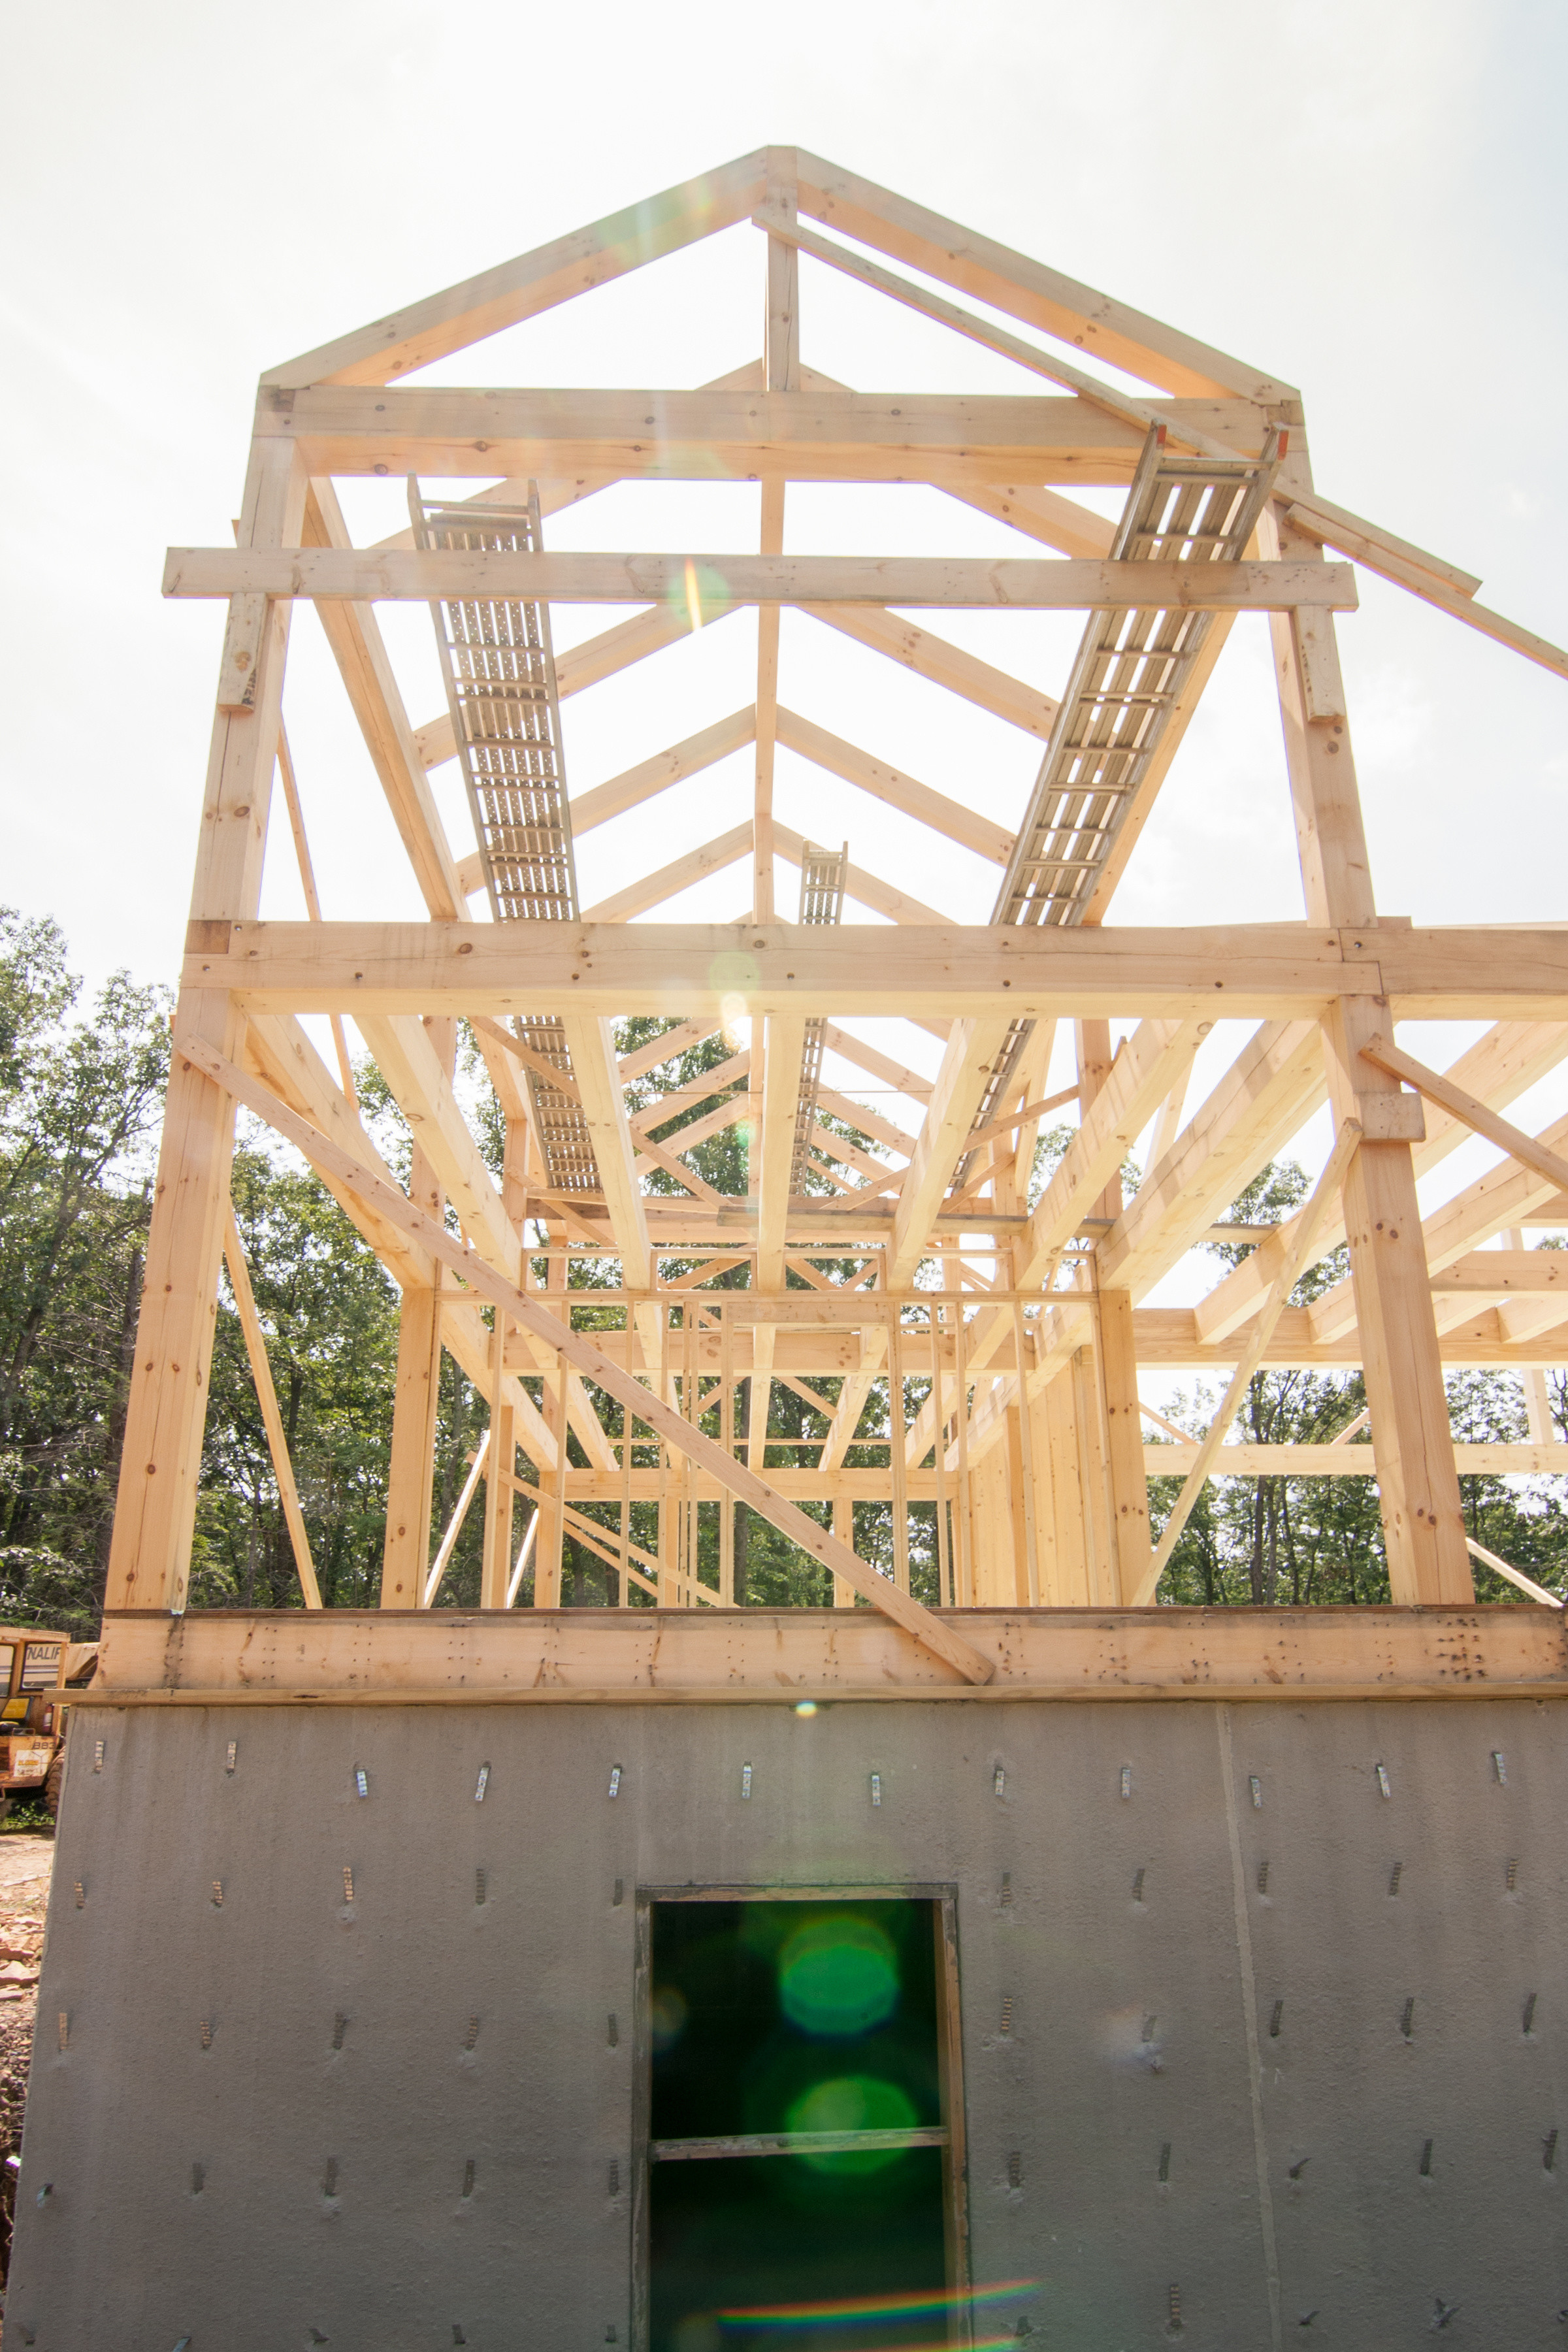 Beam roof design figure a 9 rafter ring beam connection for Post and beam construction plans